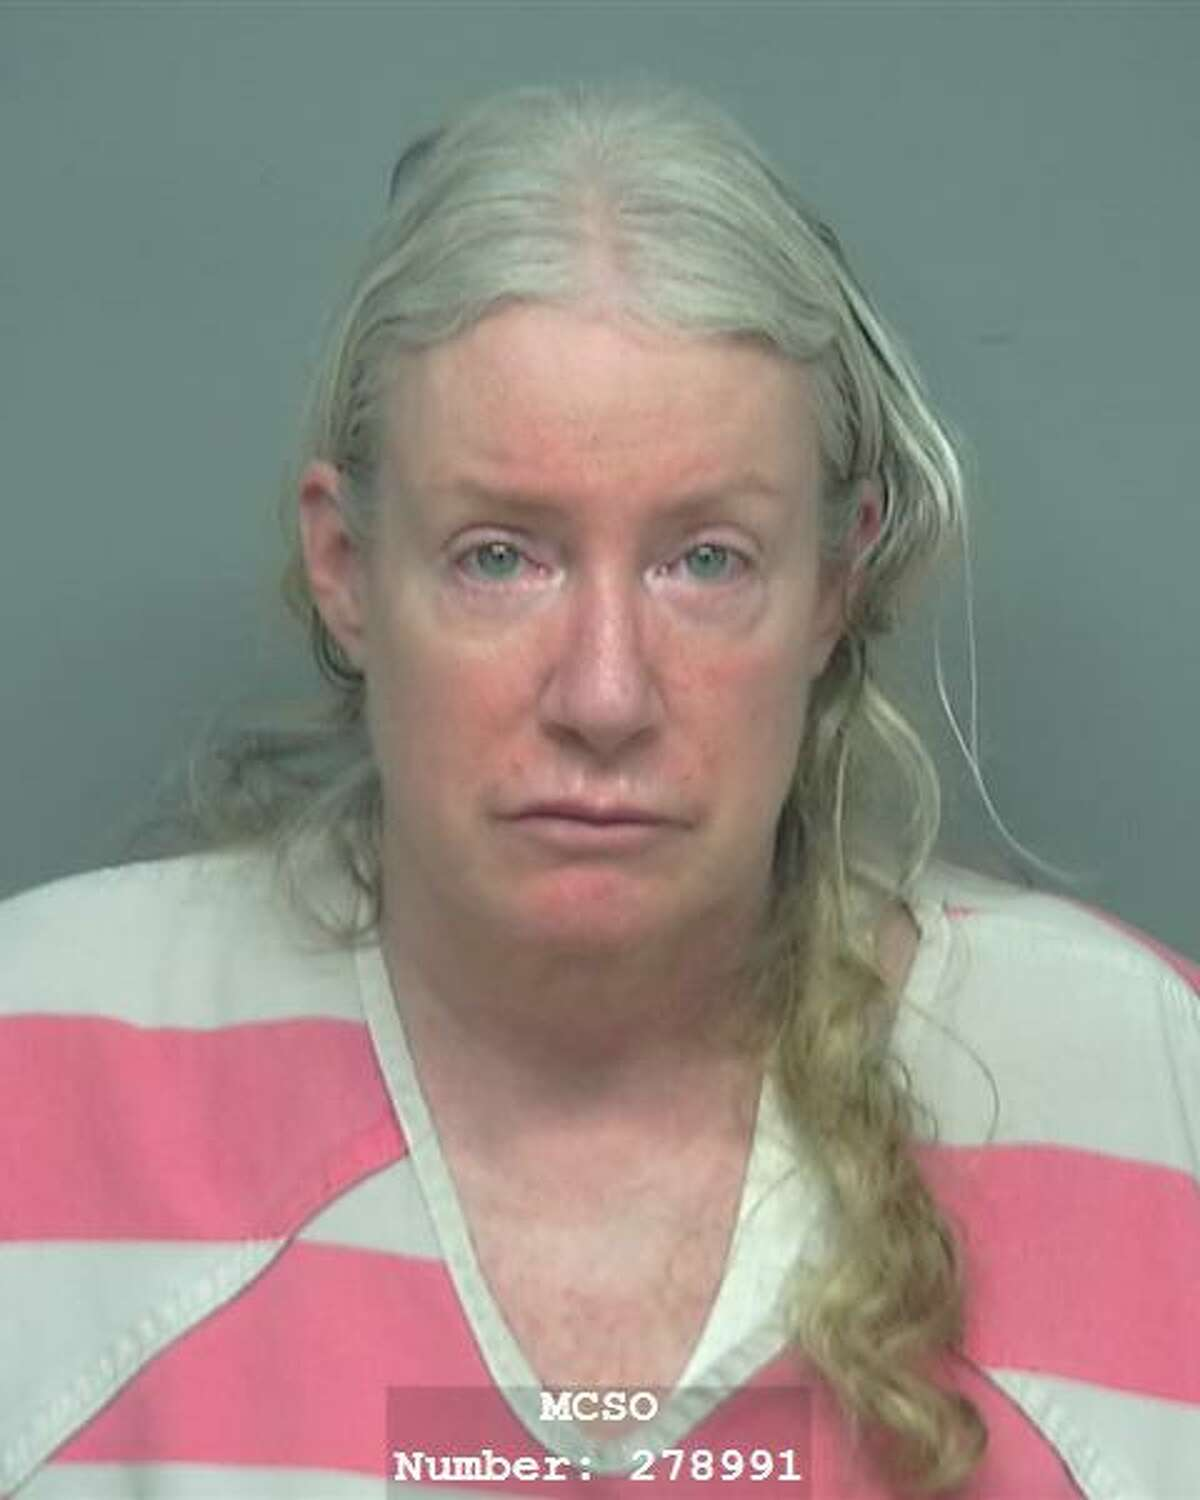 Barbara Ann Kenney, 57, of Spring, is charged with murder in the death of her husband, which officers found lifeless in their backyard.